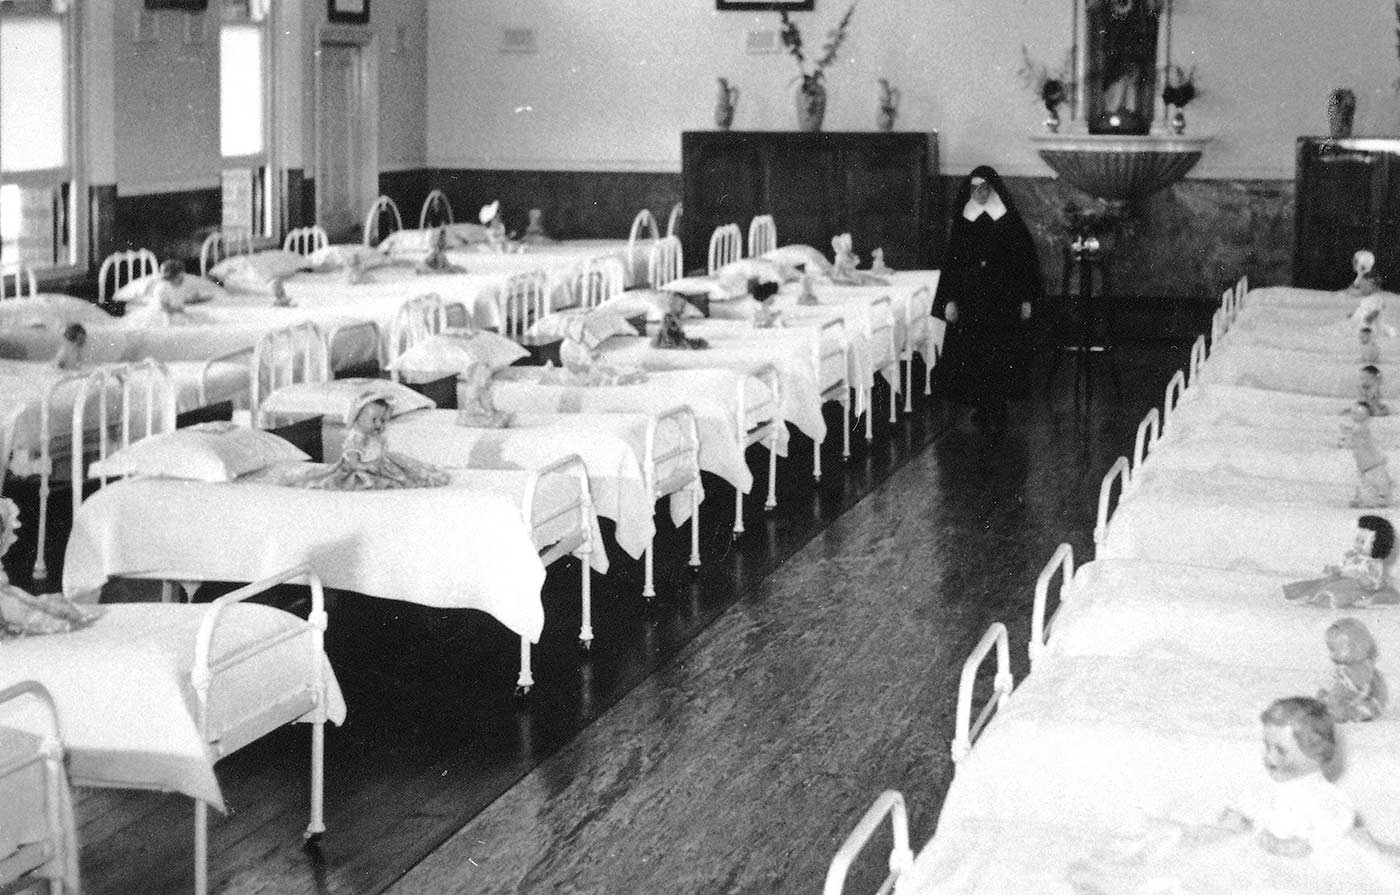 Black and white photograph showing three rows of small children's beds with white covers and a doll sitting on each. A nun walks down the centre of the room. - click to view larger image